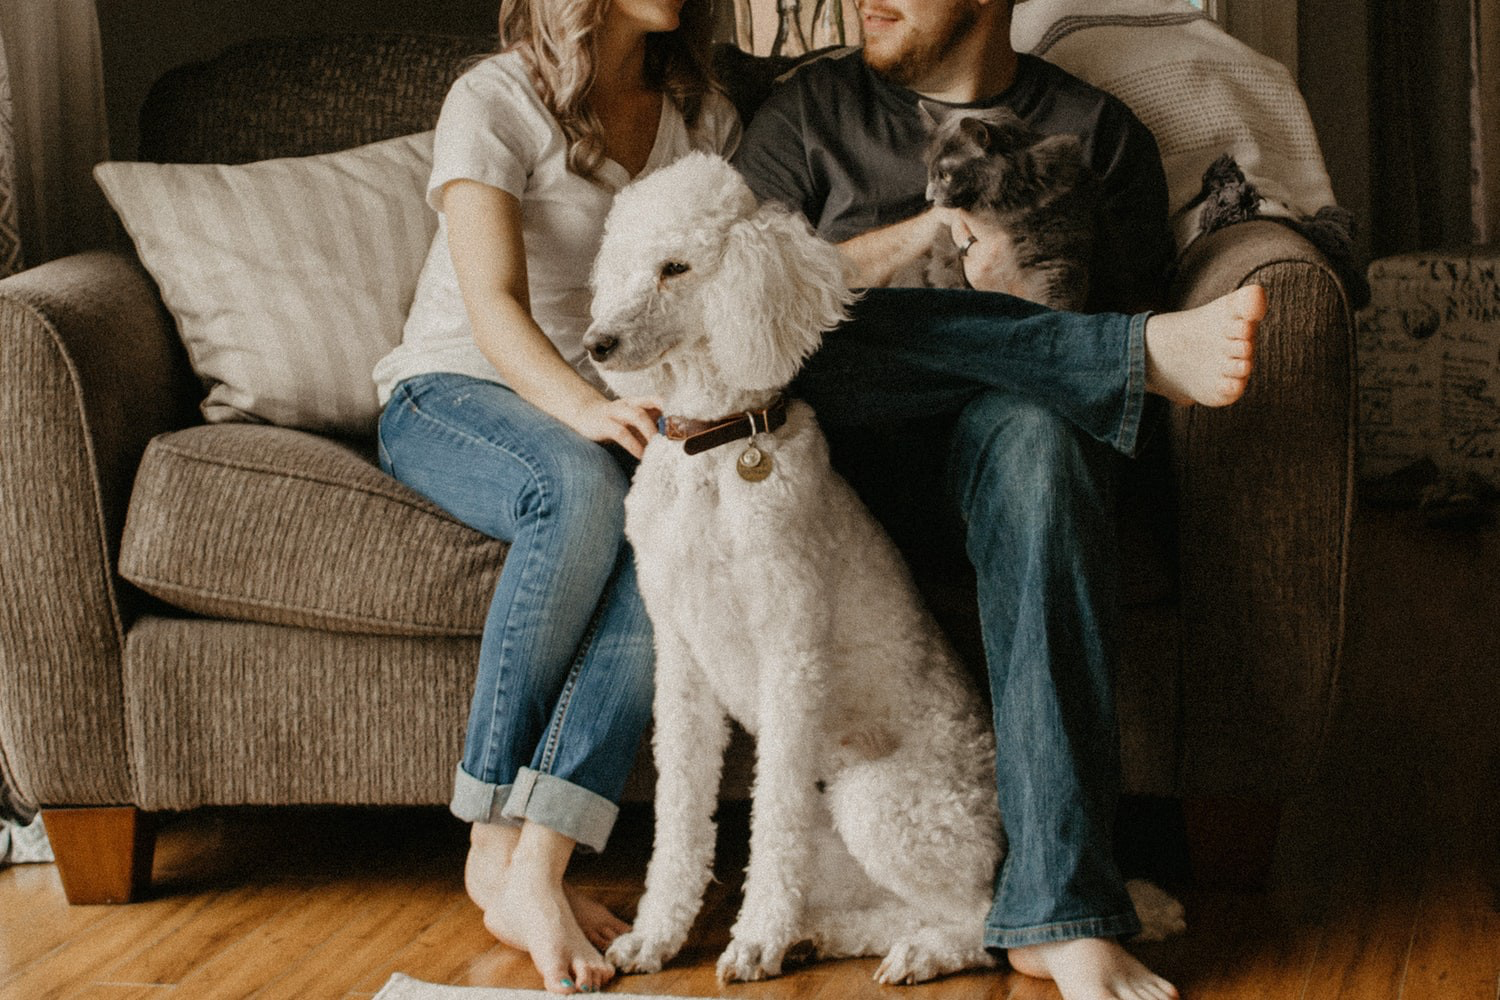 couple sitting with dog, family and dog, white fluffy dog, love